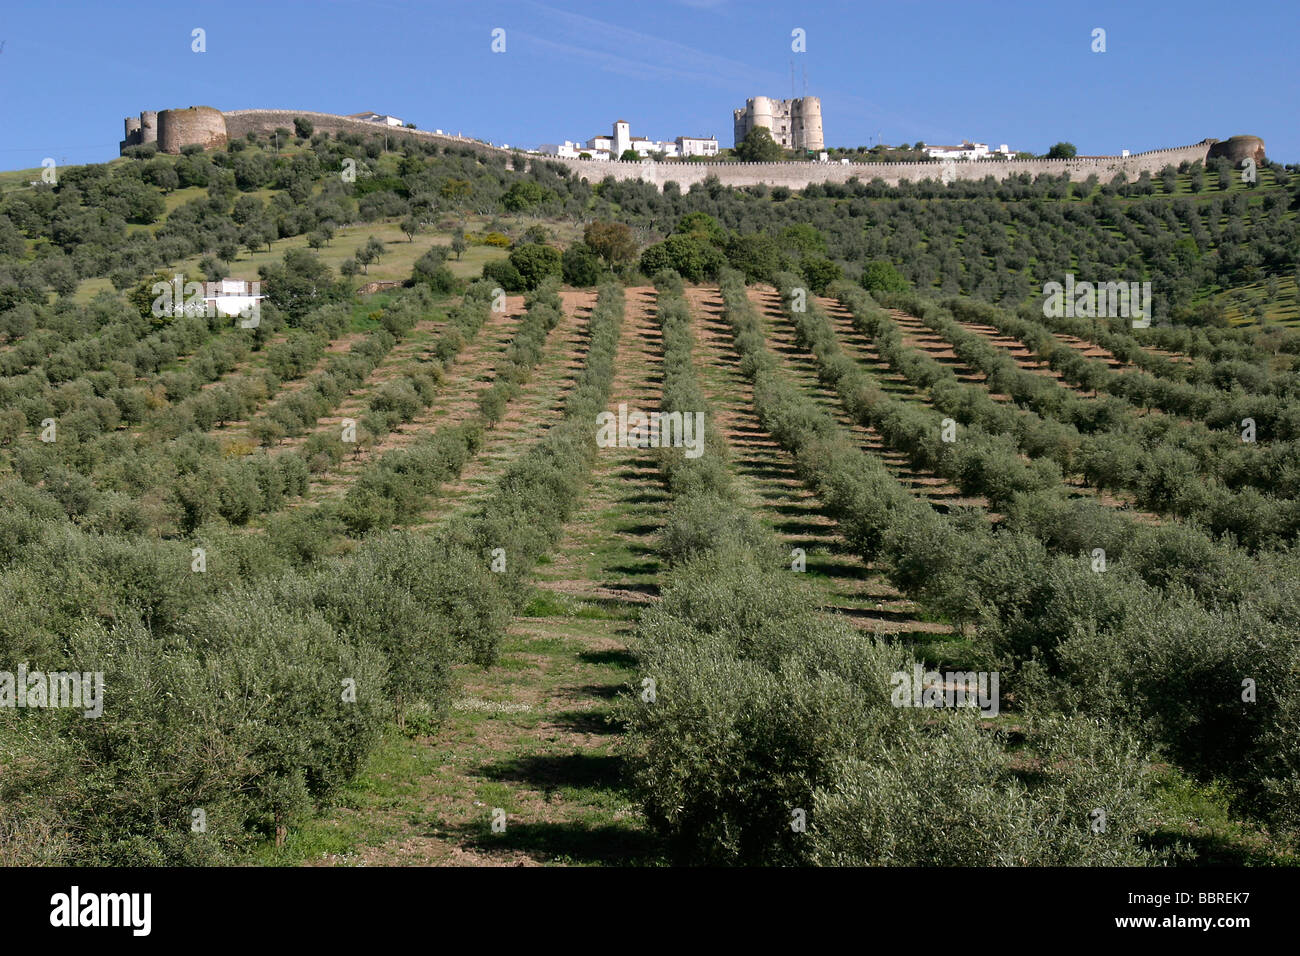 FORTIFIED TOWN OF EVORAMONTE AND VIEW OF THE NEIGHBORING LANDS, ALENTEJO, PORTUGAL - Stock Image